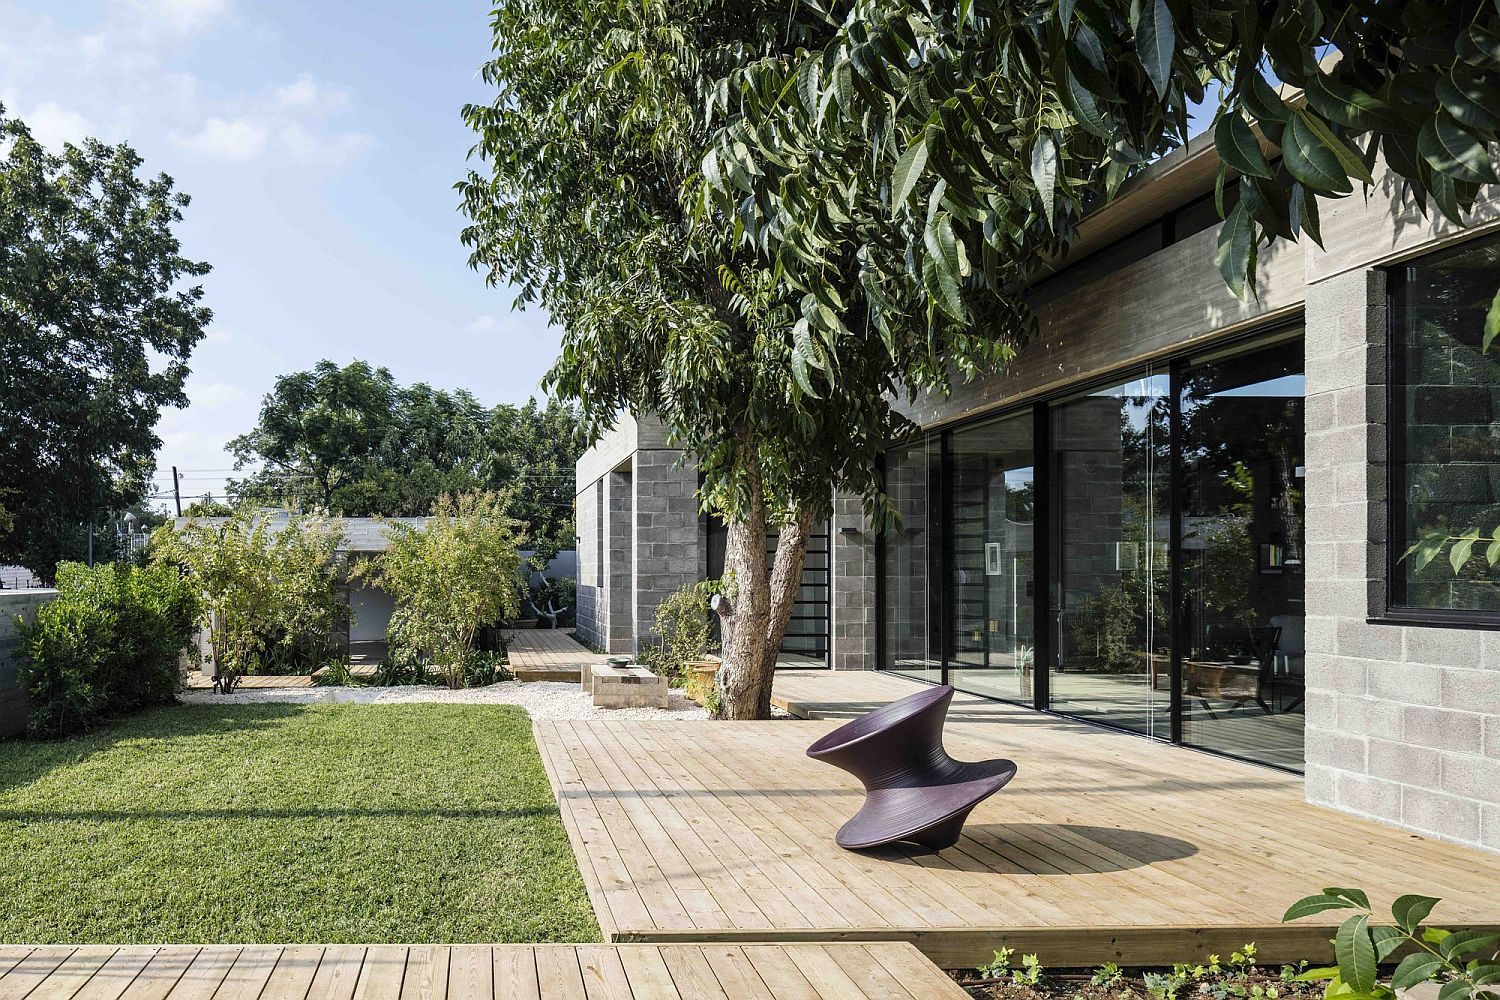 Inviting and private garden with wooden walkways